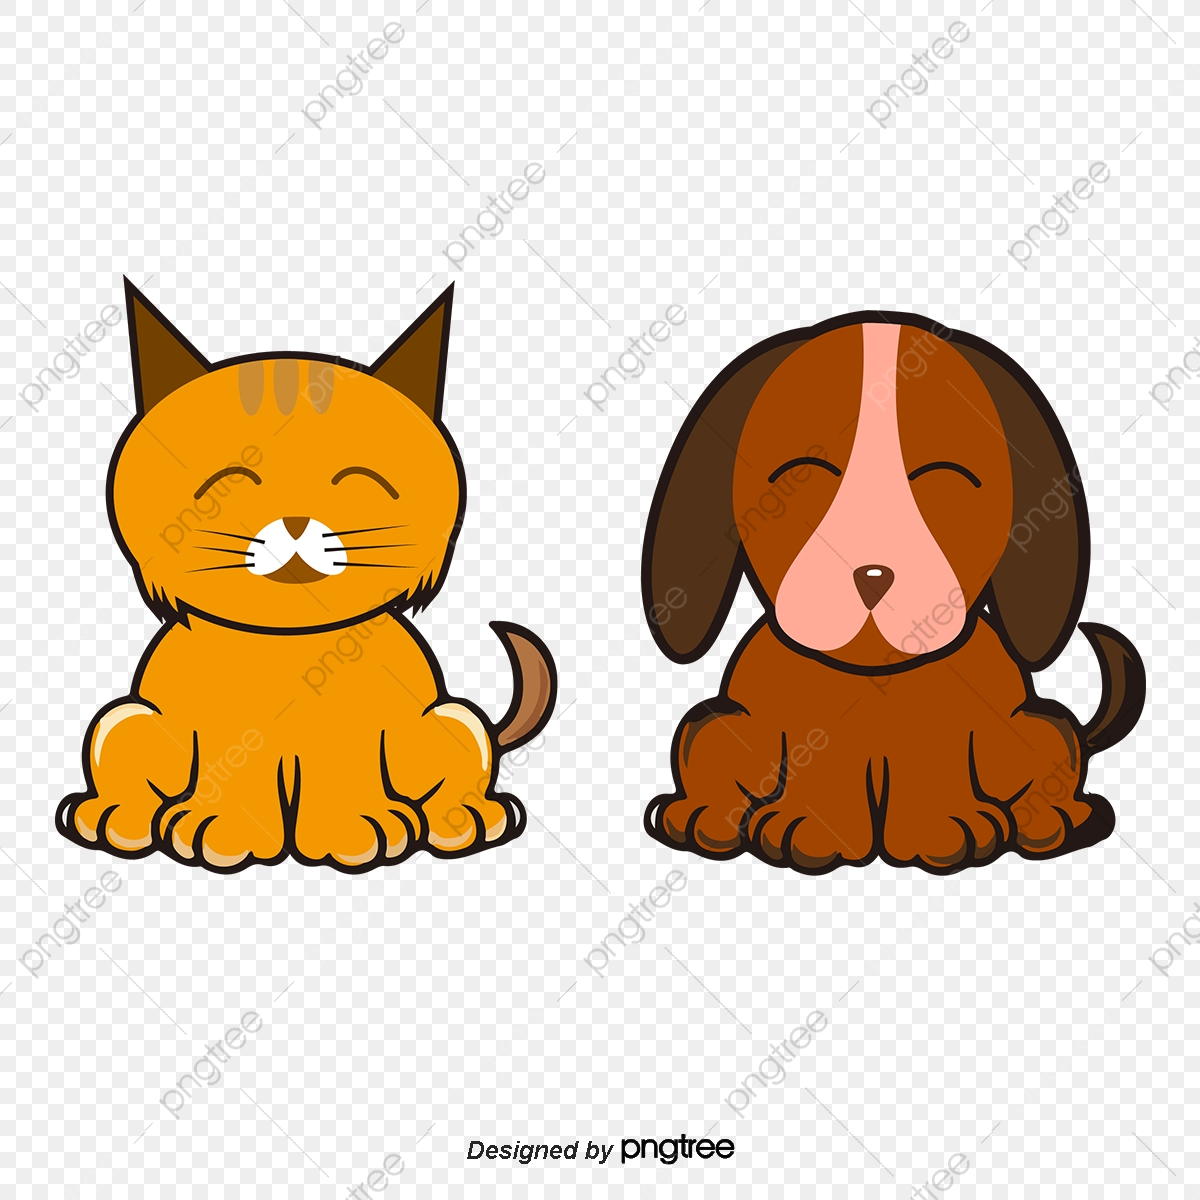 Hand Painted Cartoon Couple Cute Cats And Dogs Cartoon Animals Painted Cat Cute Dog Png Transparent Clipart Image And Psd File For Free Download